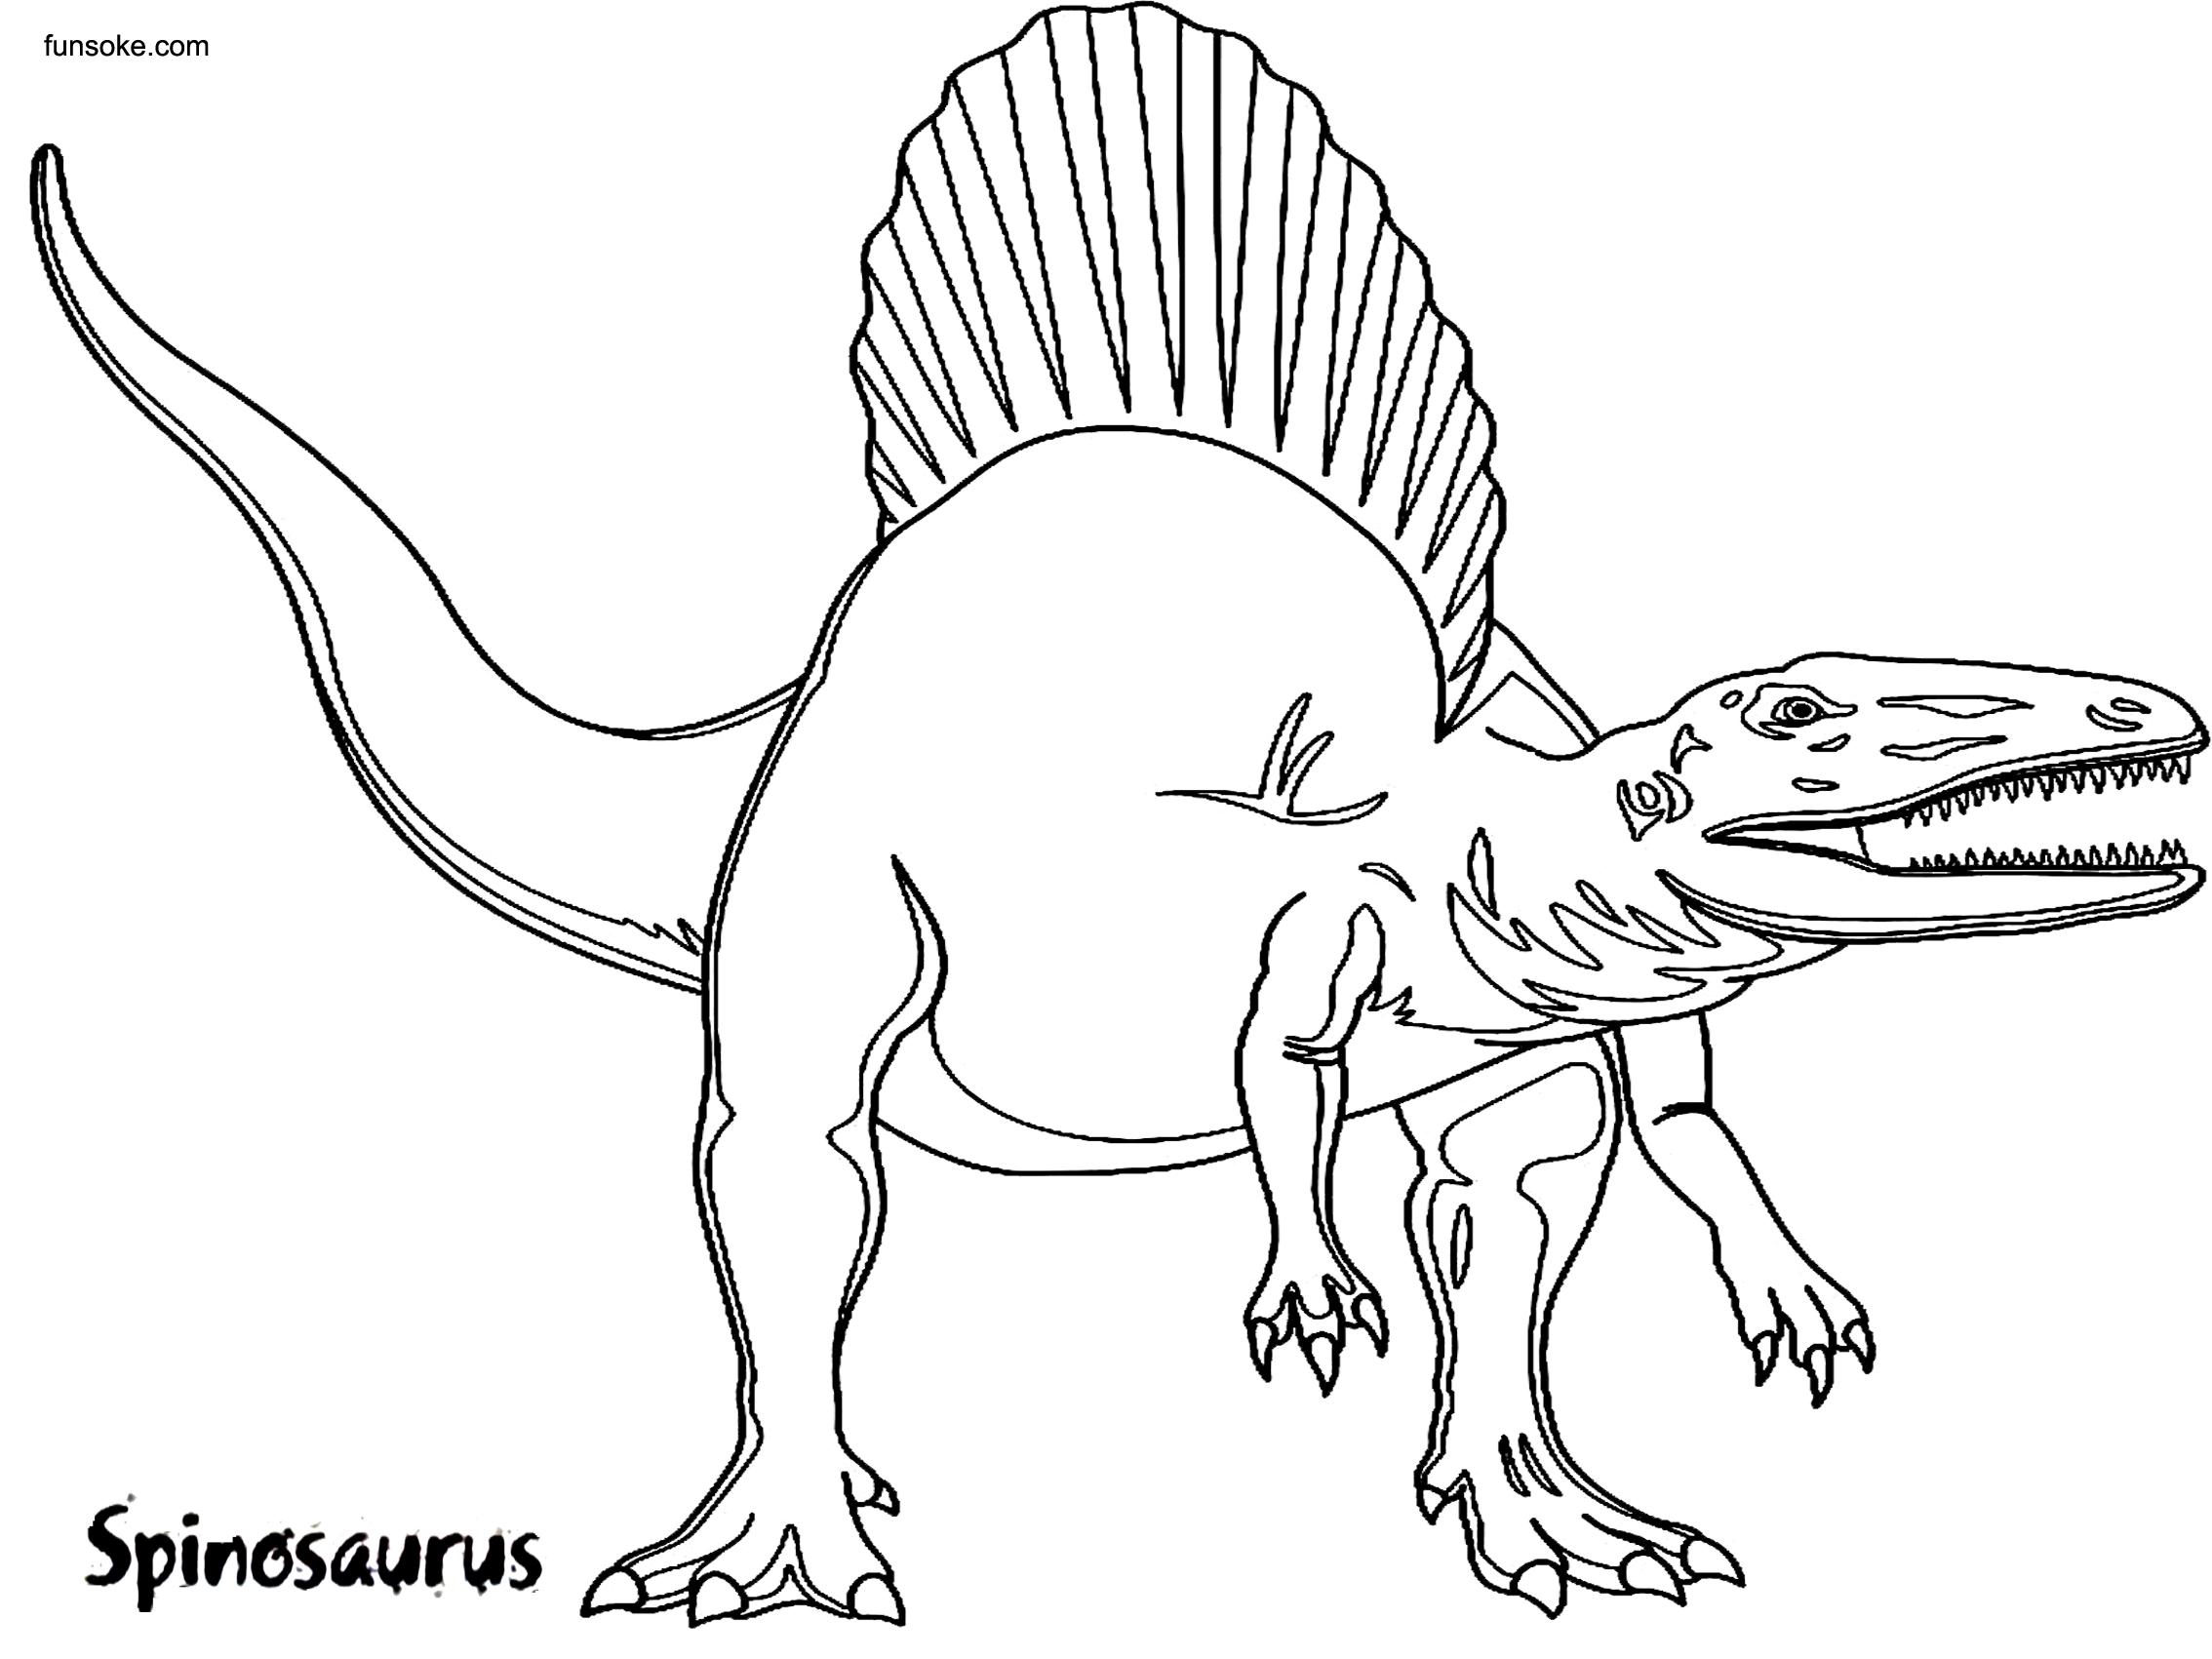 spinosaurus coloring spinosaurus coloring pages to download and print for free spinosaurus coloring